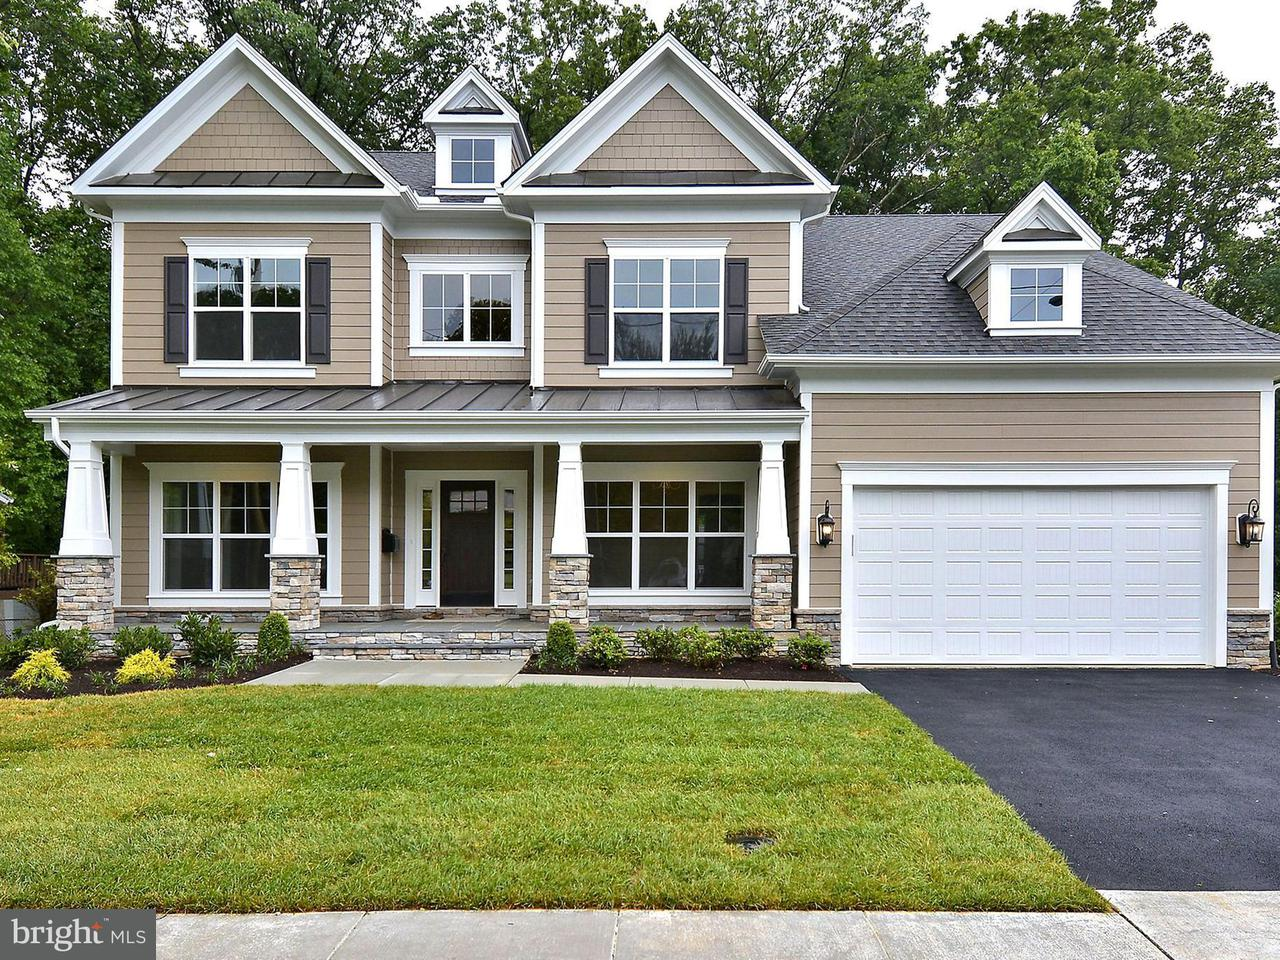 Single Family Home for Sale at 2725 Pioneer Lane 2725 Pioneer Lane Falls Church, Virginia 22043 United States